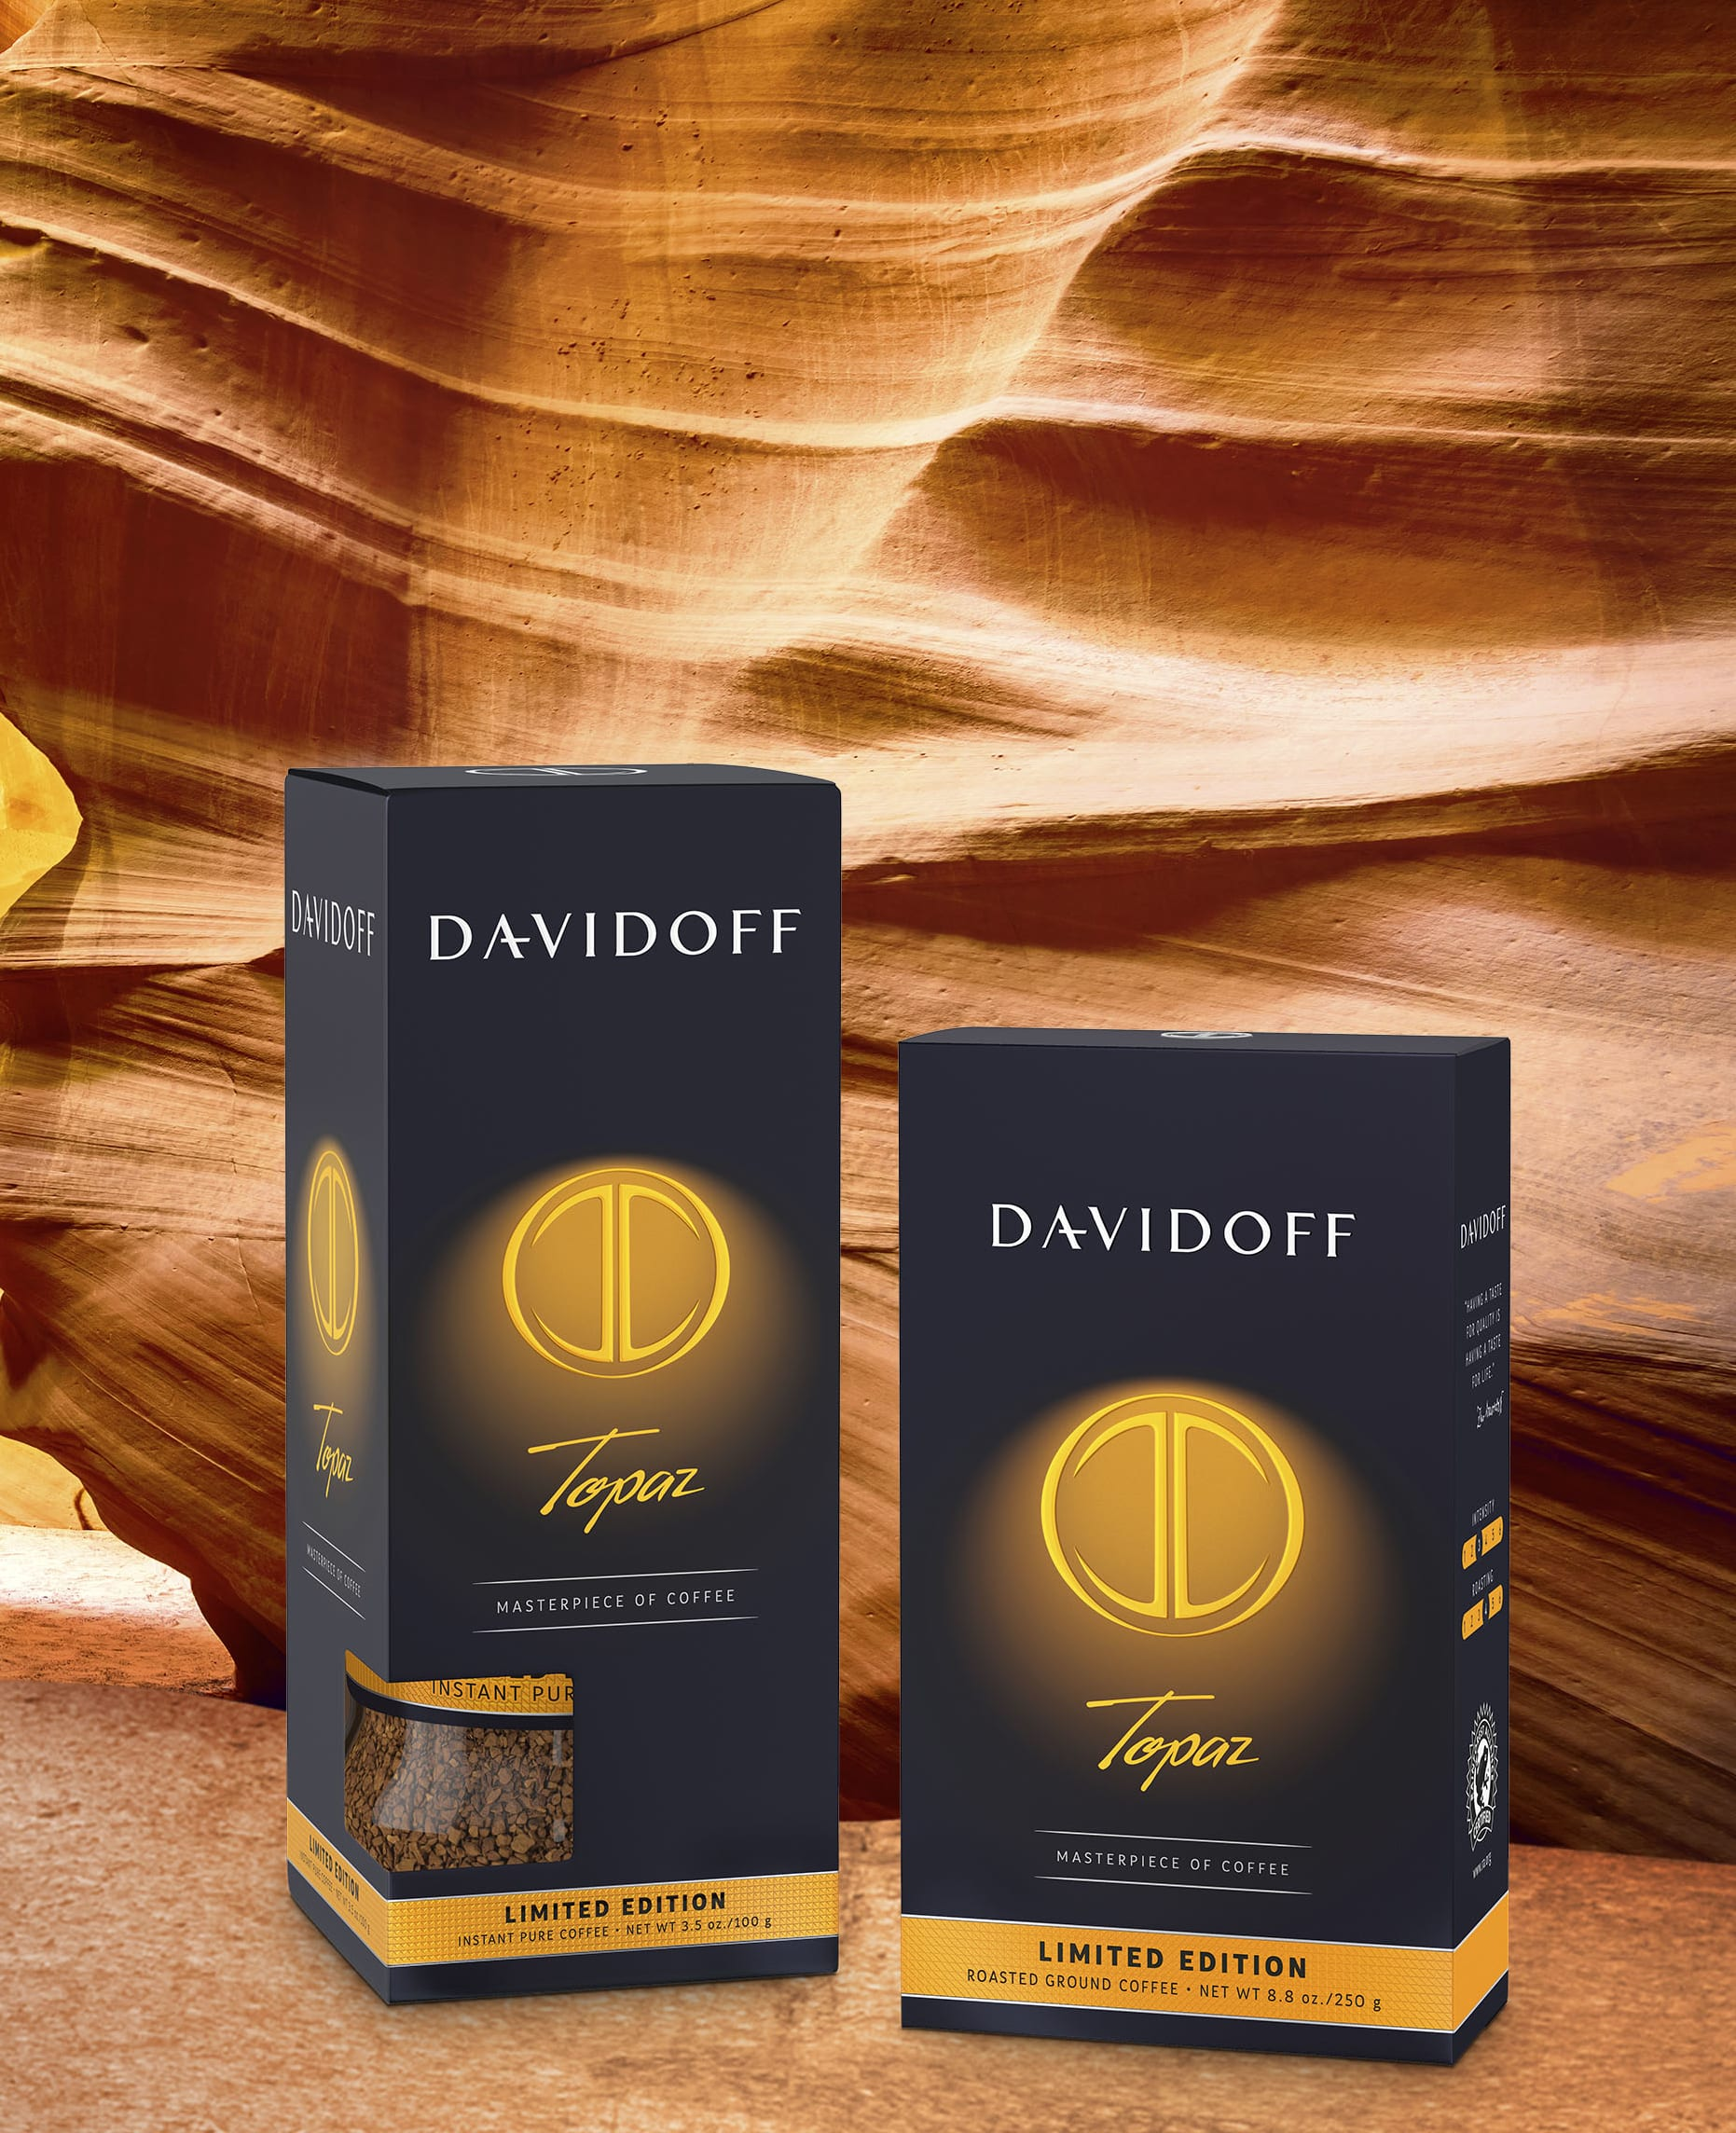 DAVIDOFF coffee - limited edition Topaz